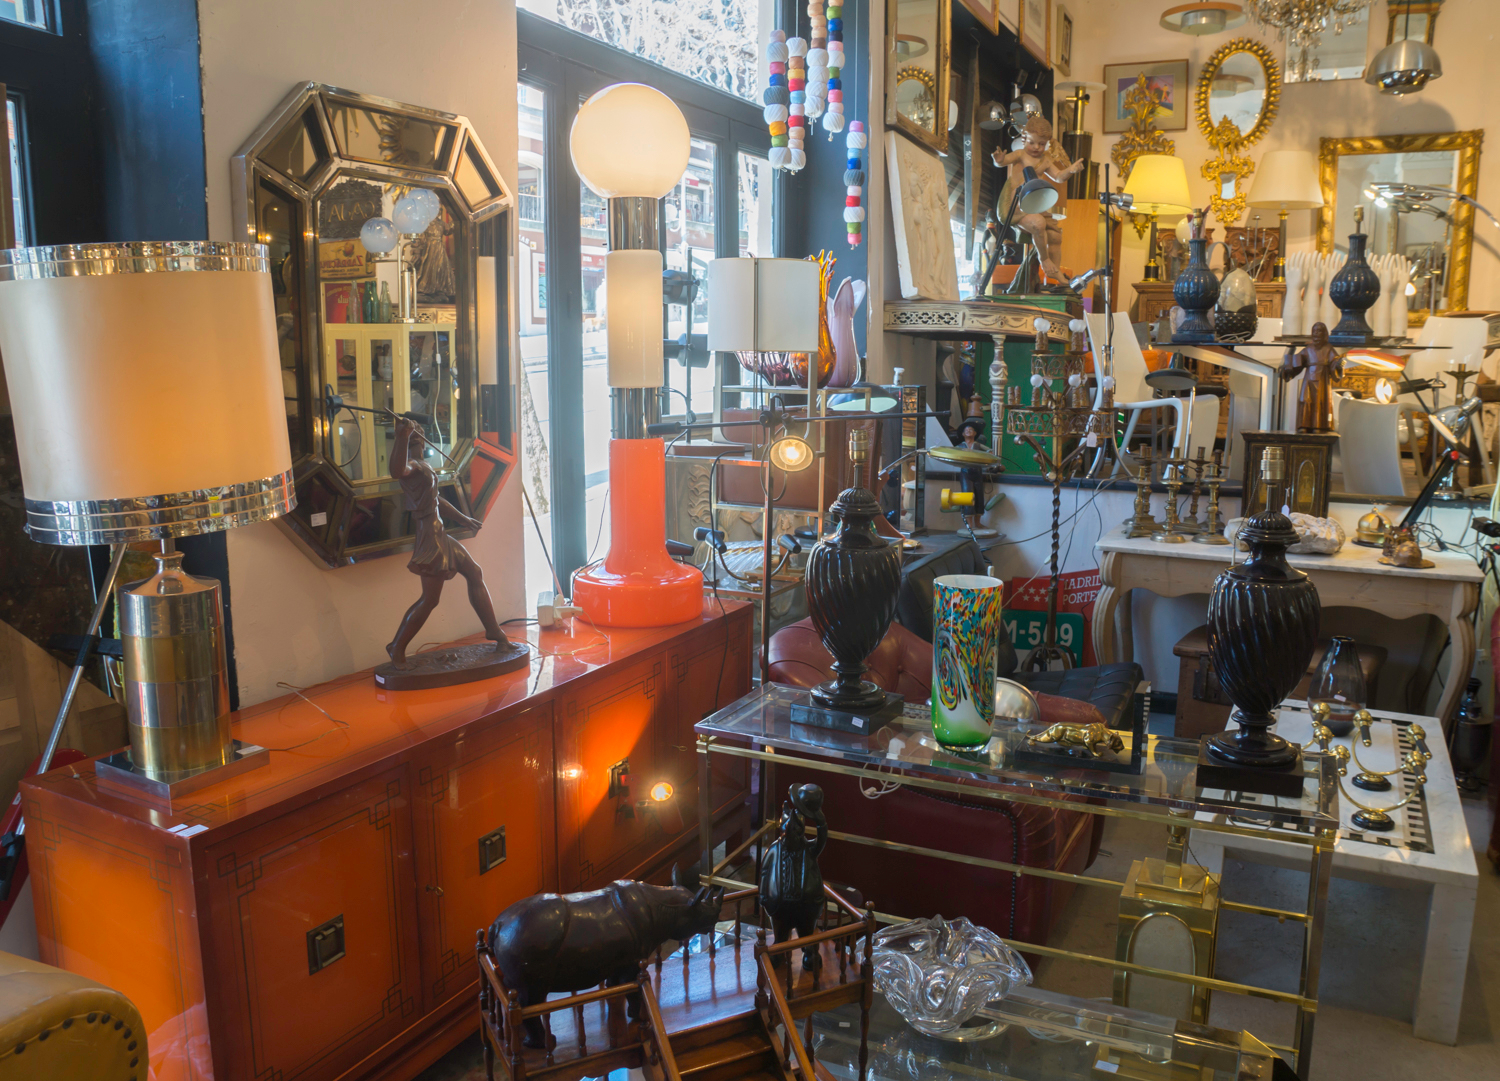 Barataria - eclectic antiques shop at Madrid Rastro